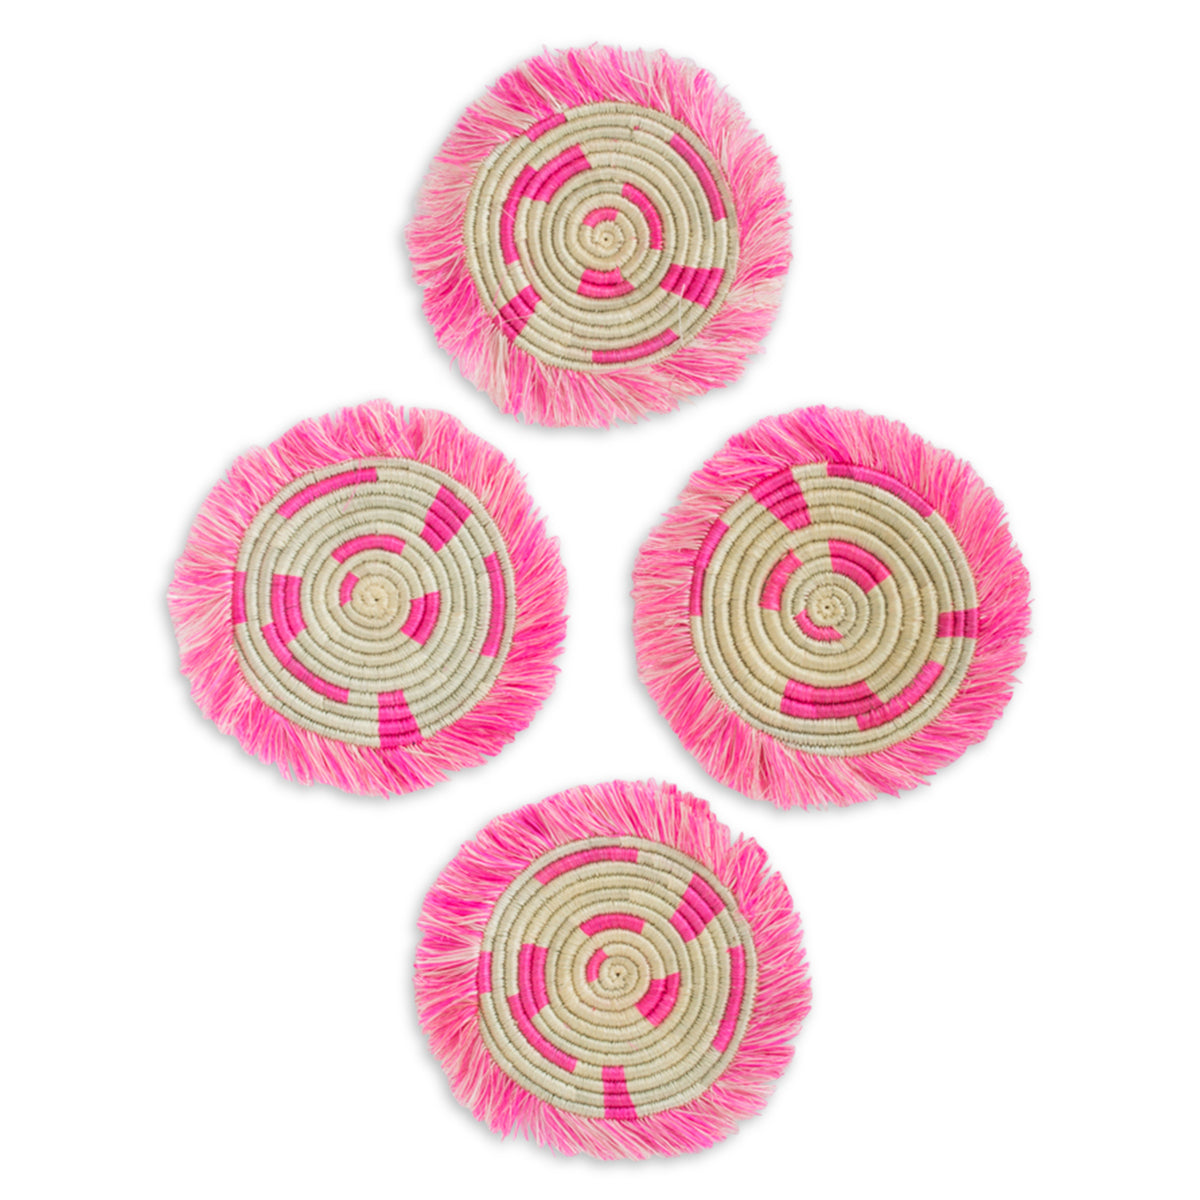 Beachfront Fringed Coasters - Neon Pink